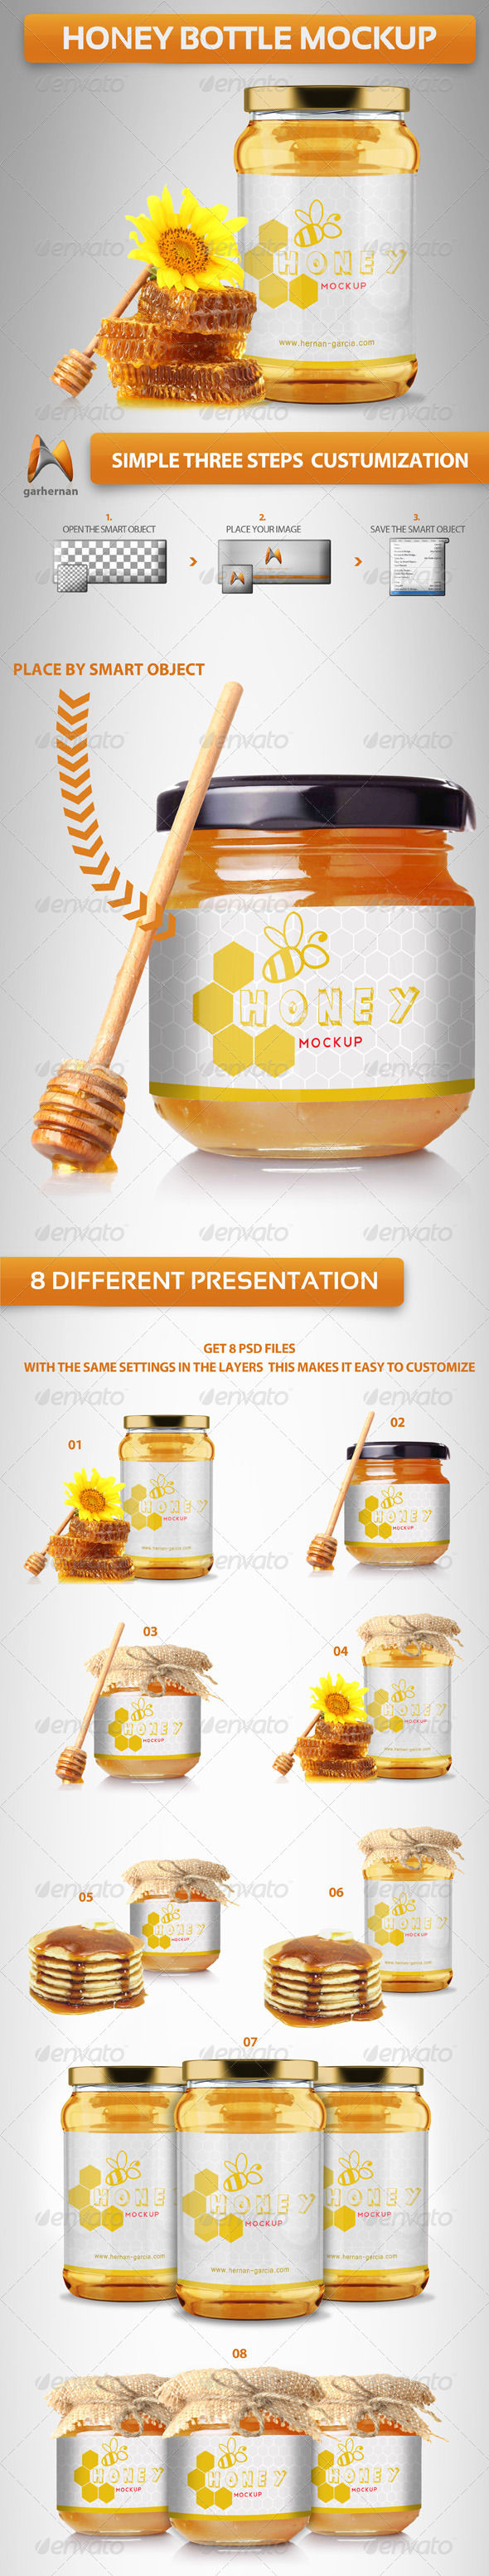 GraphicRiver Honey Bottle Mockup 4420816